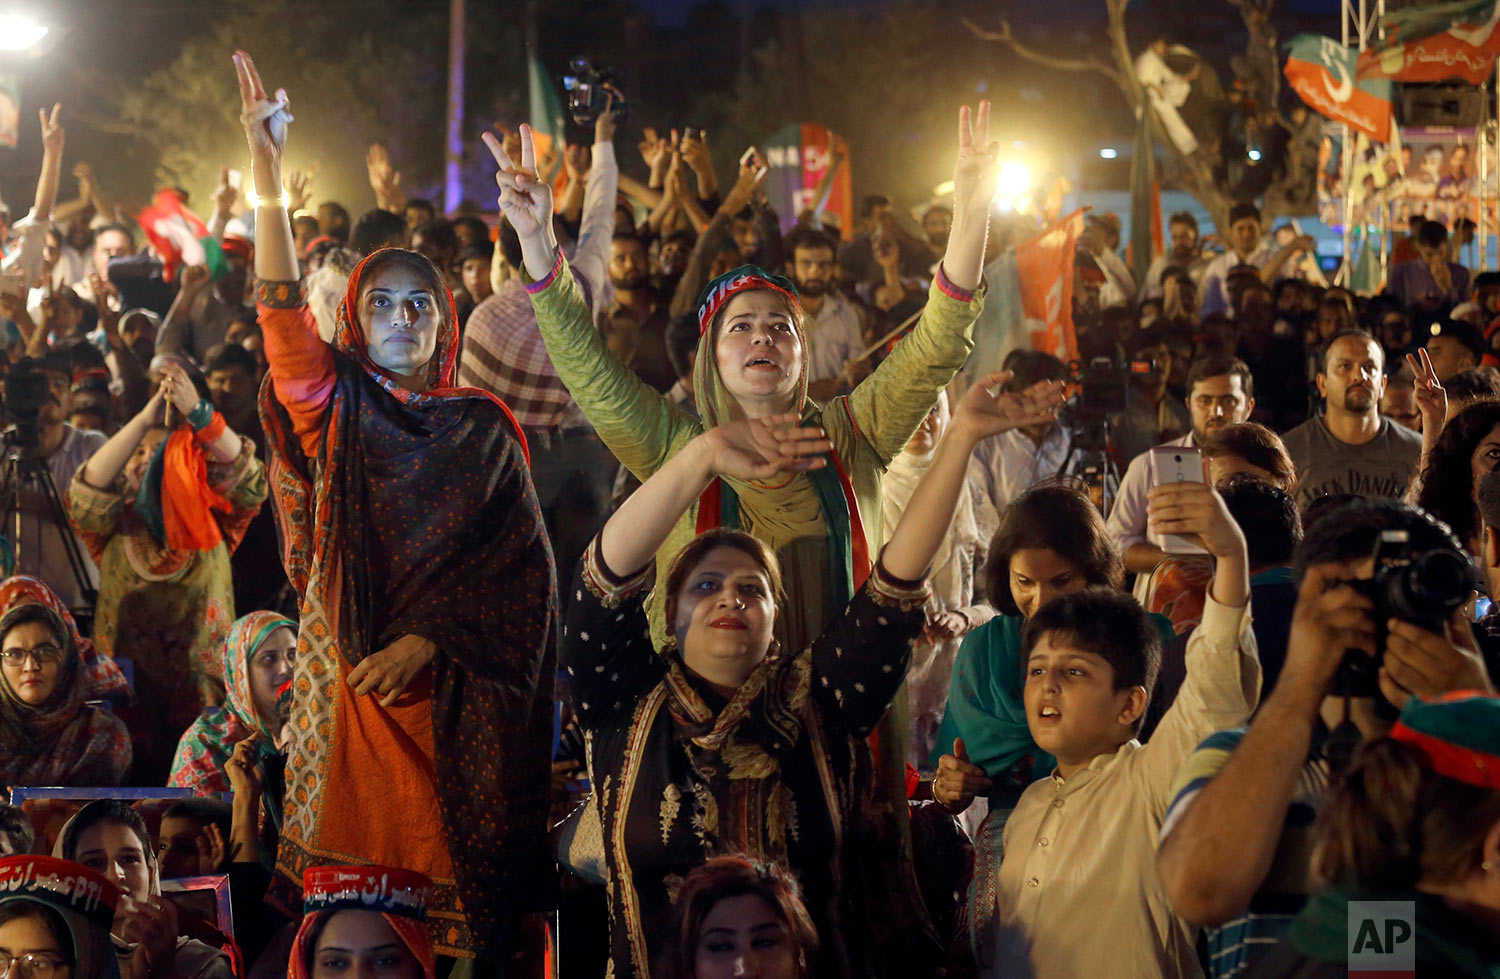 Supporters of Tehreek-e-Insaf party greet to their leader Imran Khan during an election campaign rally in Islamabad, Pakistan, Saturday, July 21, 2018. (AP Photo/Anjum Naveed)